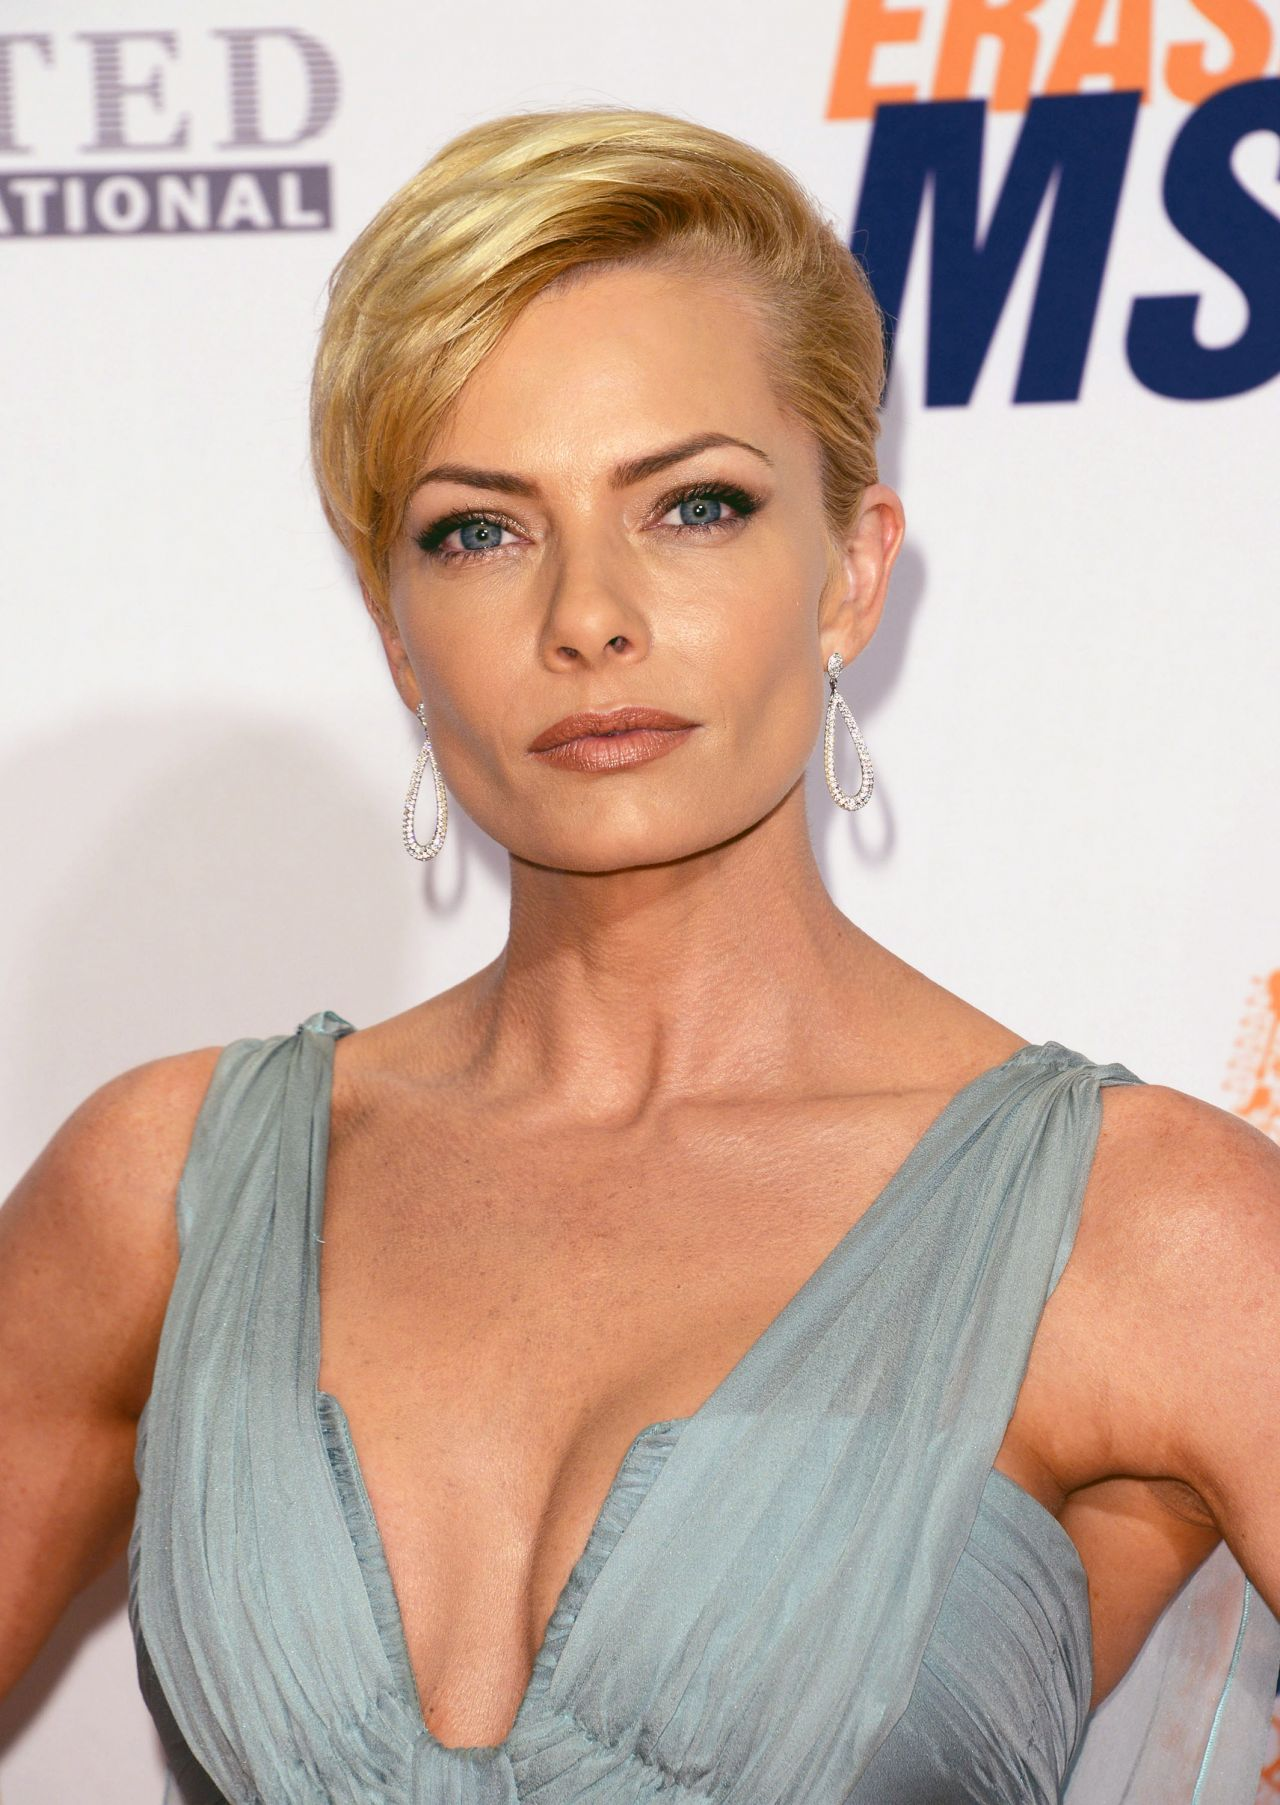 Pictures Jaime Pressly naked (15 foto and video), Pussy, Cleavage, Feet, in bikini 2006